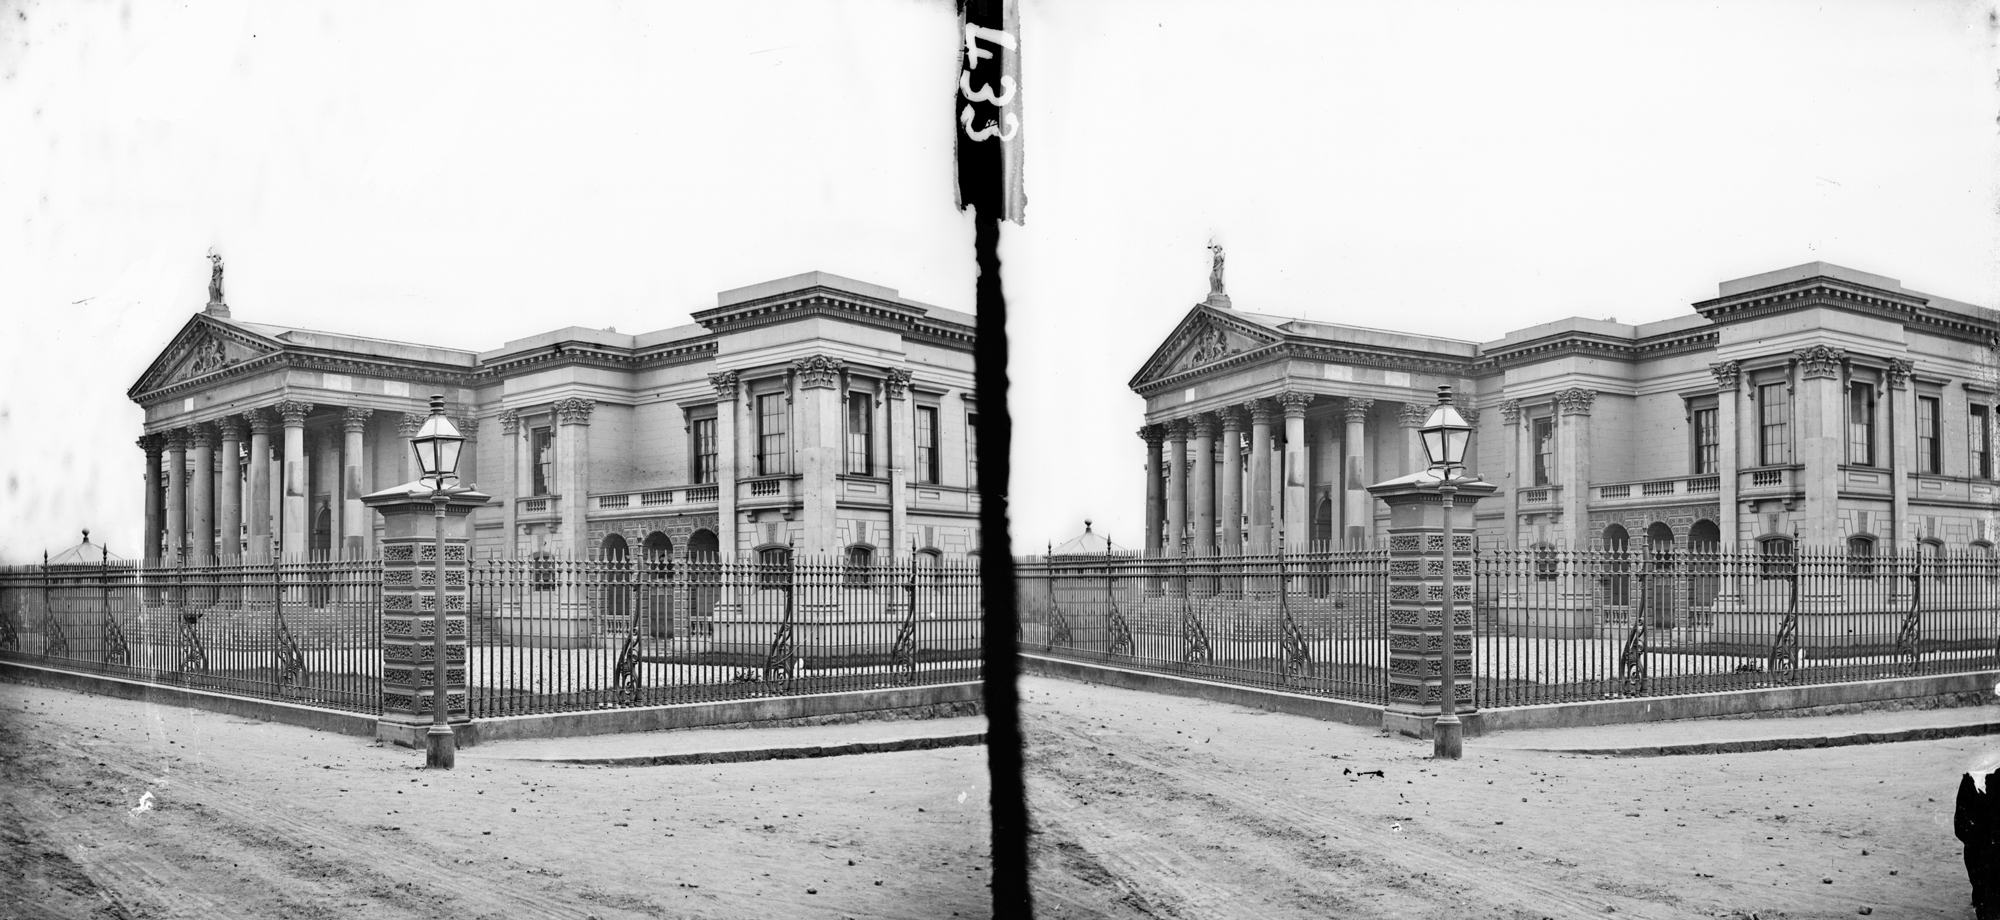 Two-storey classical style modern building - is Crumlin Road Courthouse in Belfast